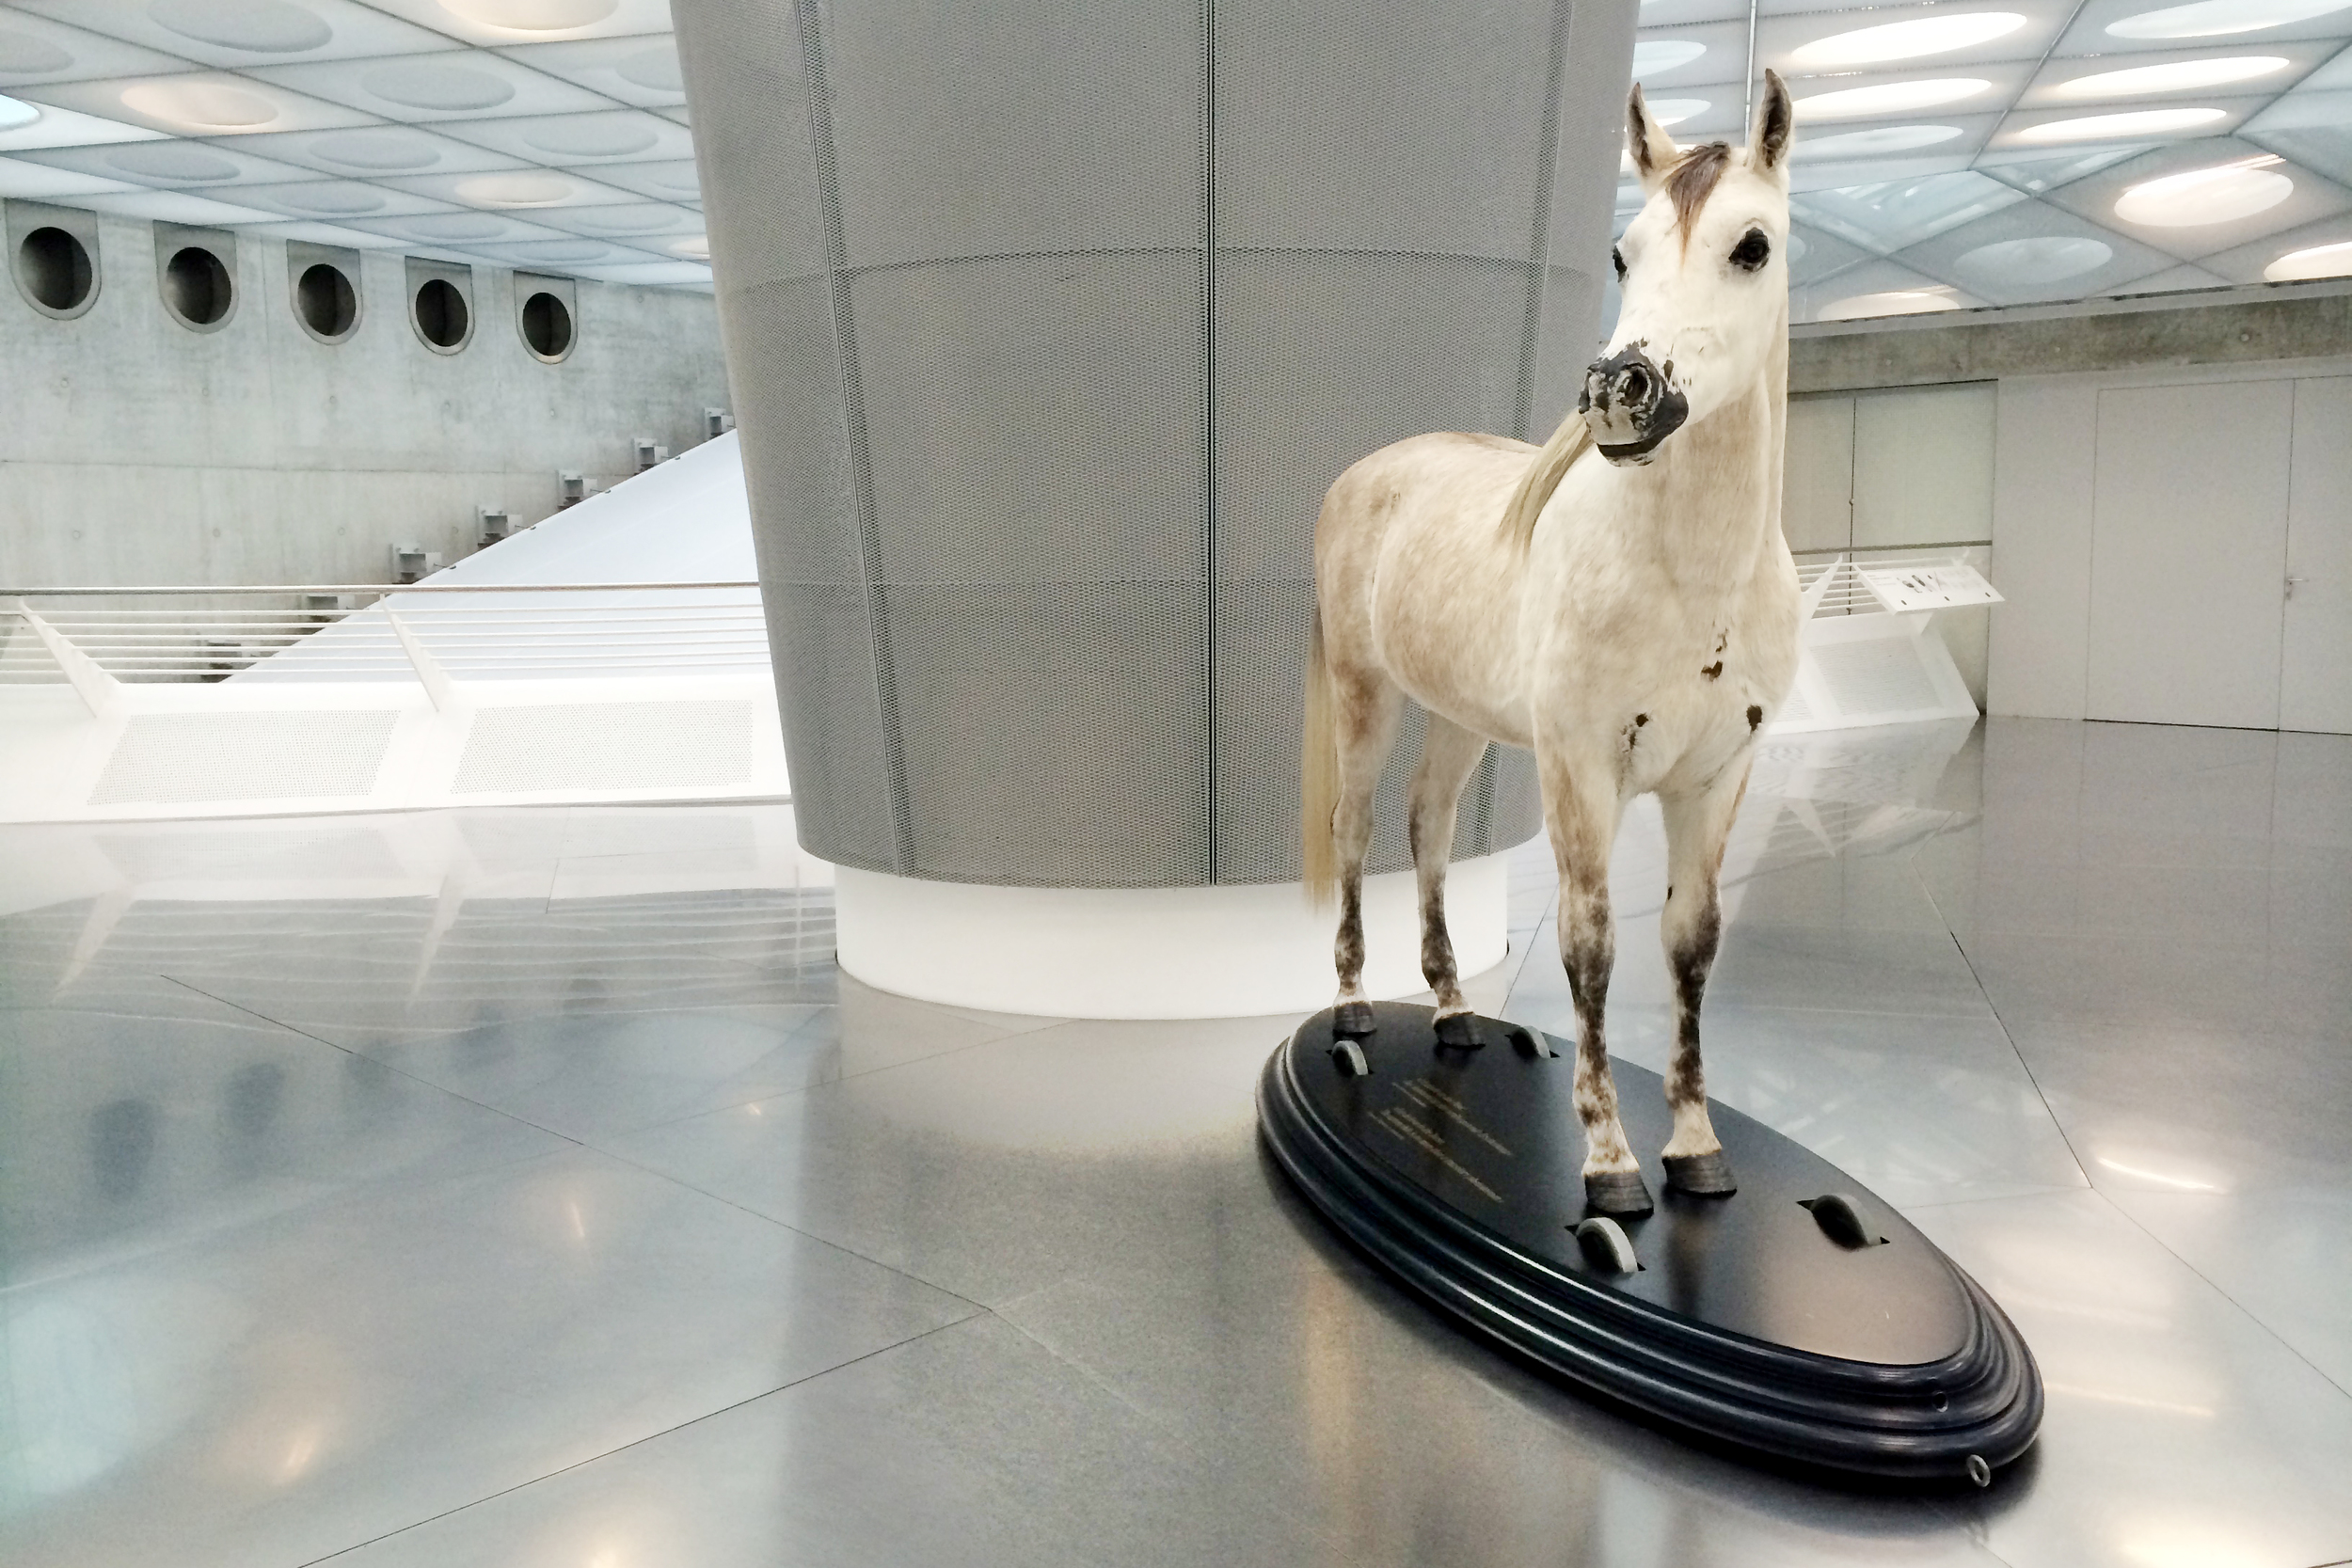 The original mode of transportation—it's one horse-power :)